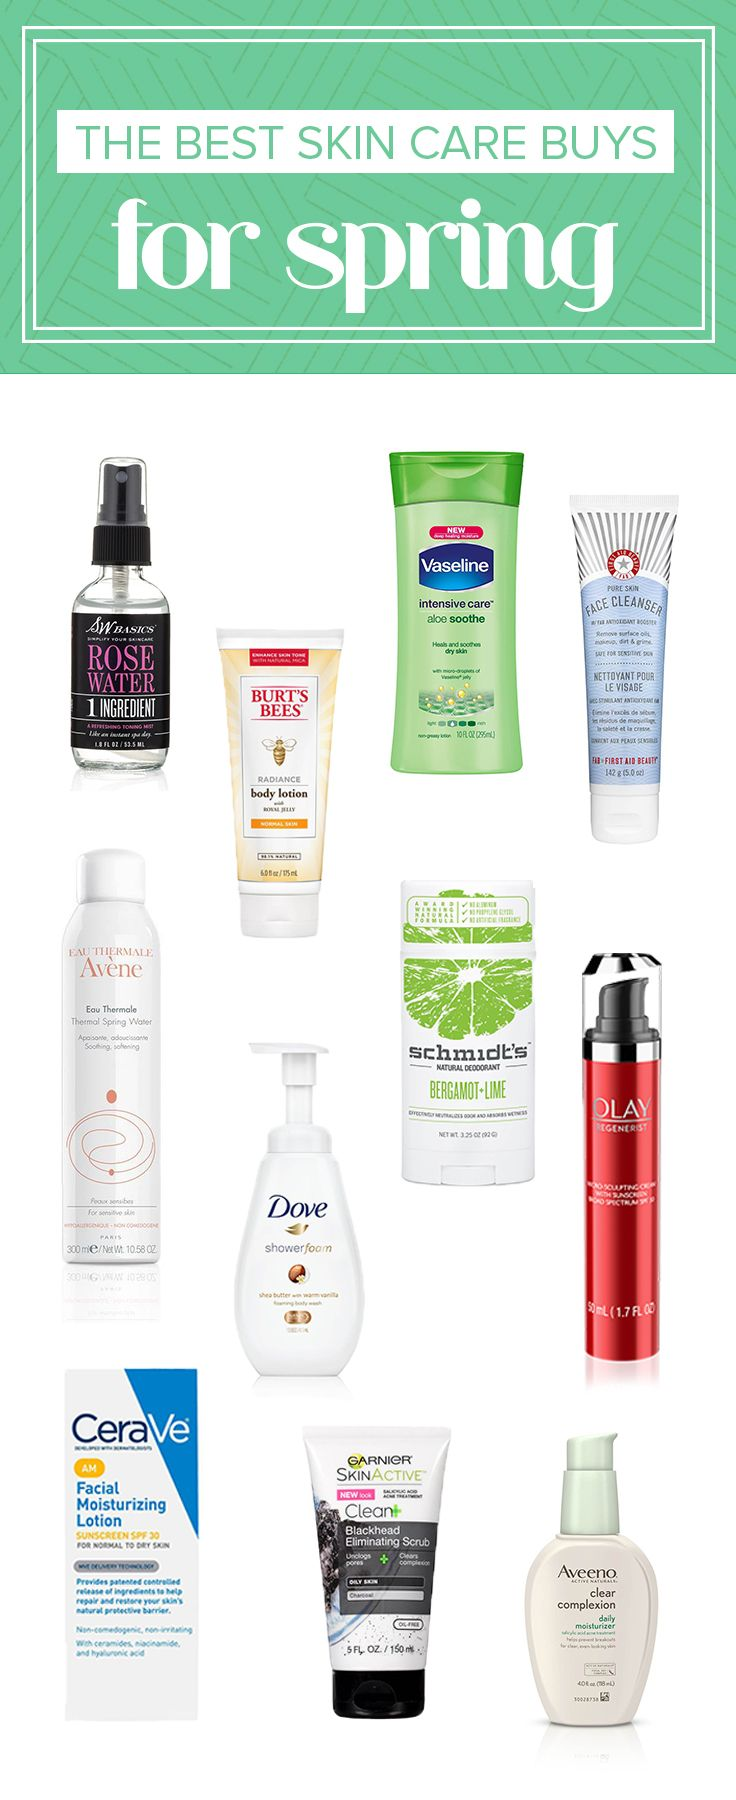 Upgrade your face and body skin care routine with these drugstore product recommendations.